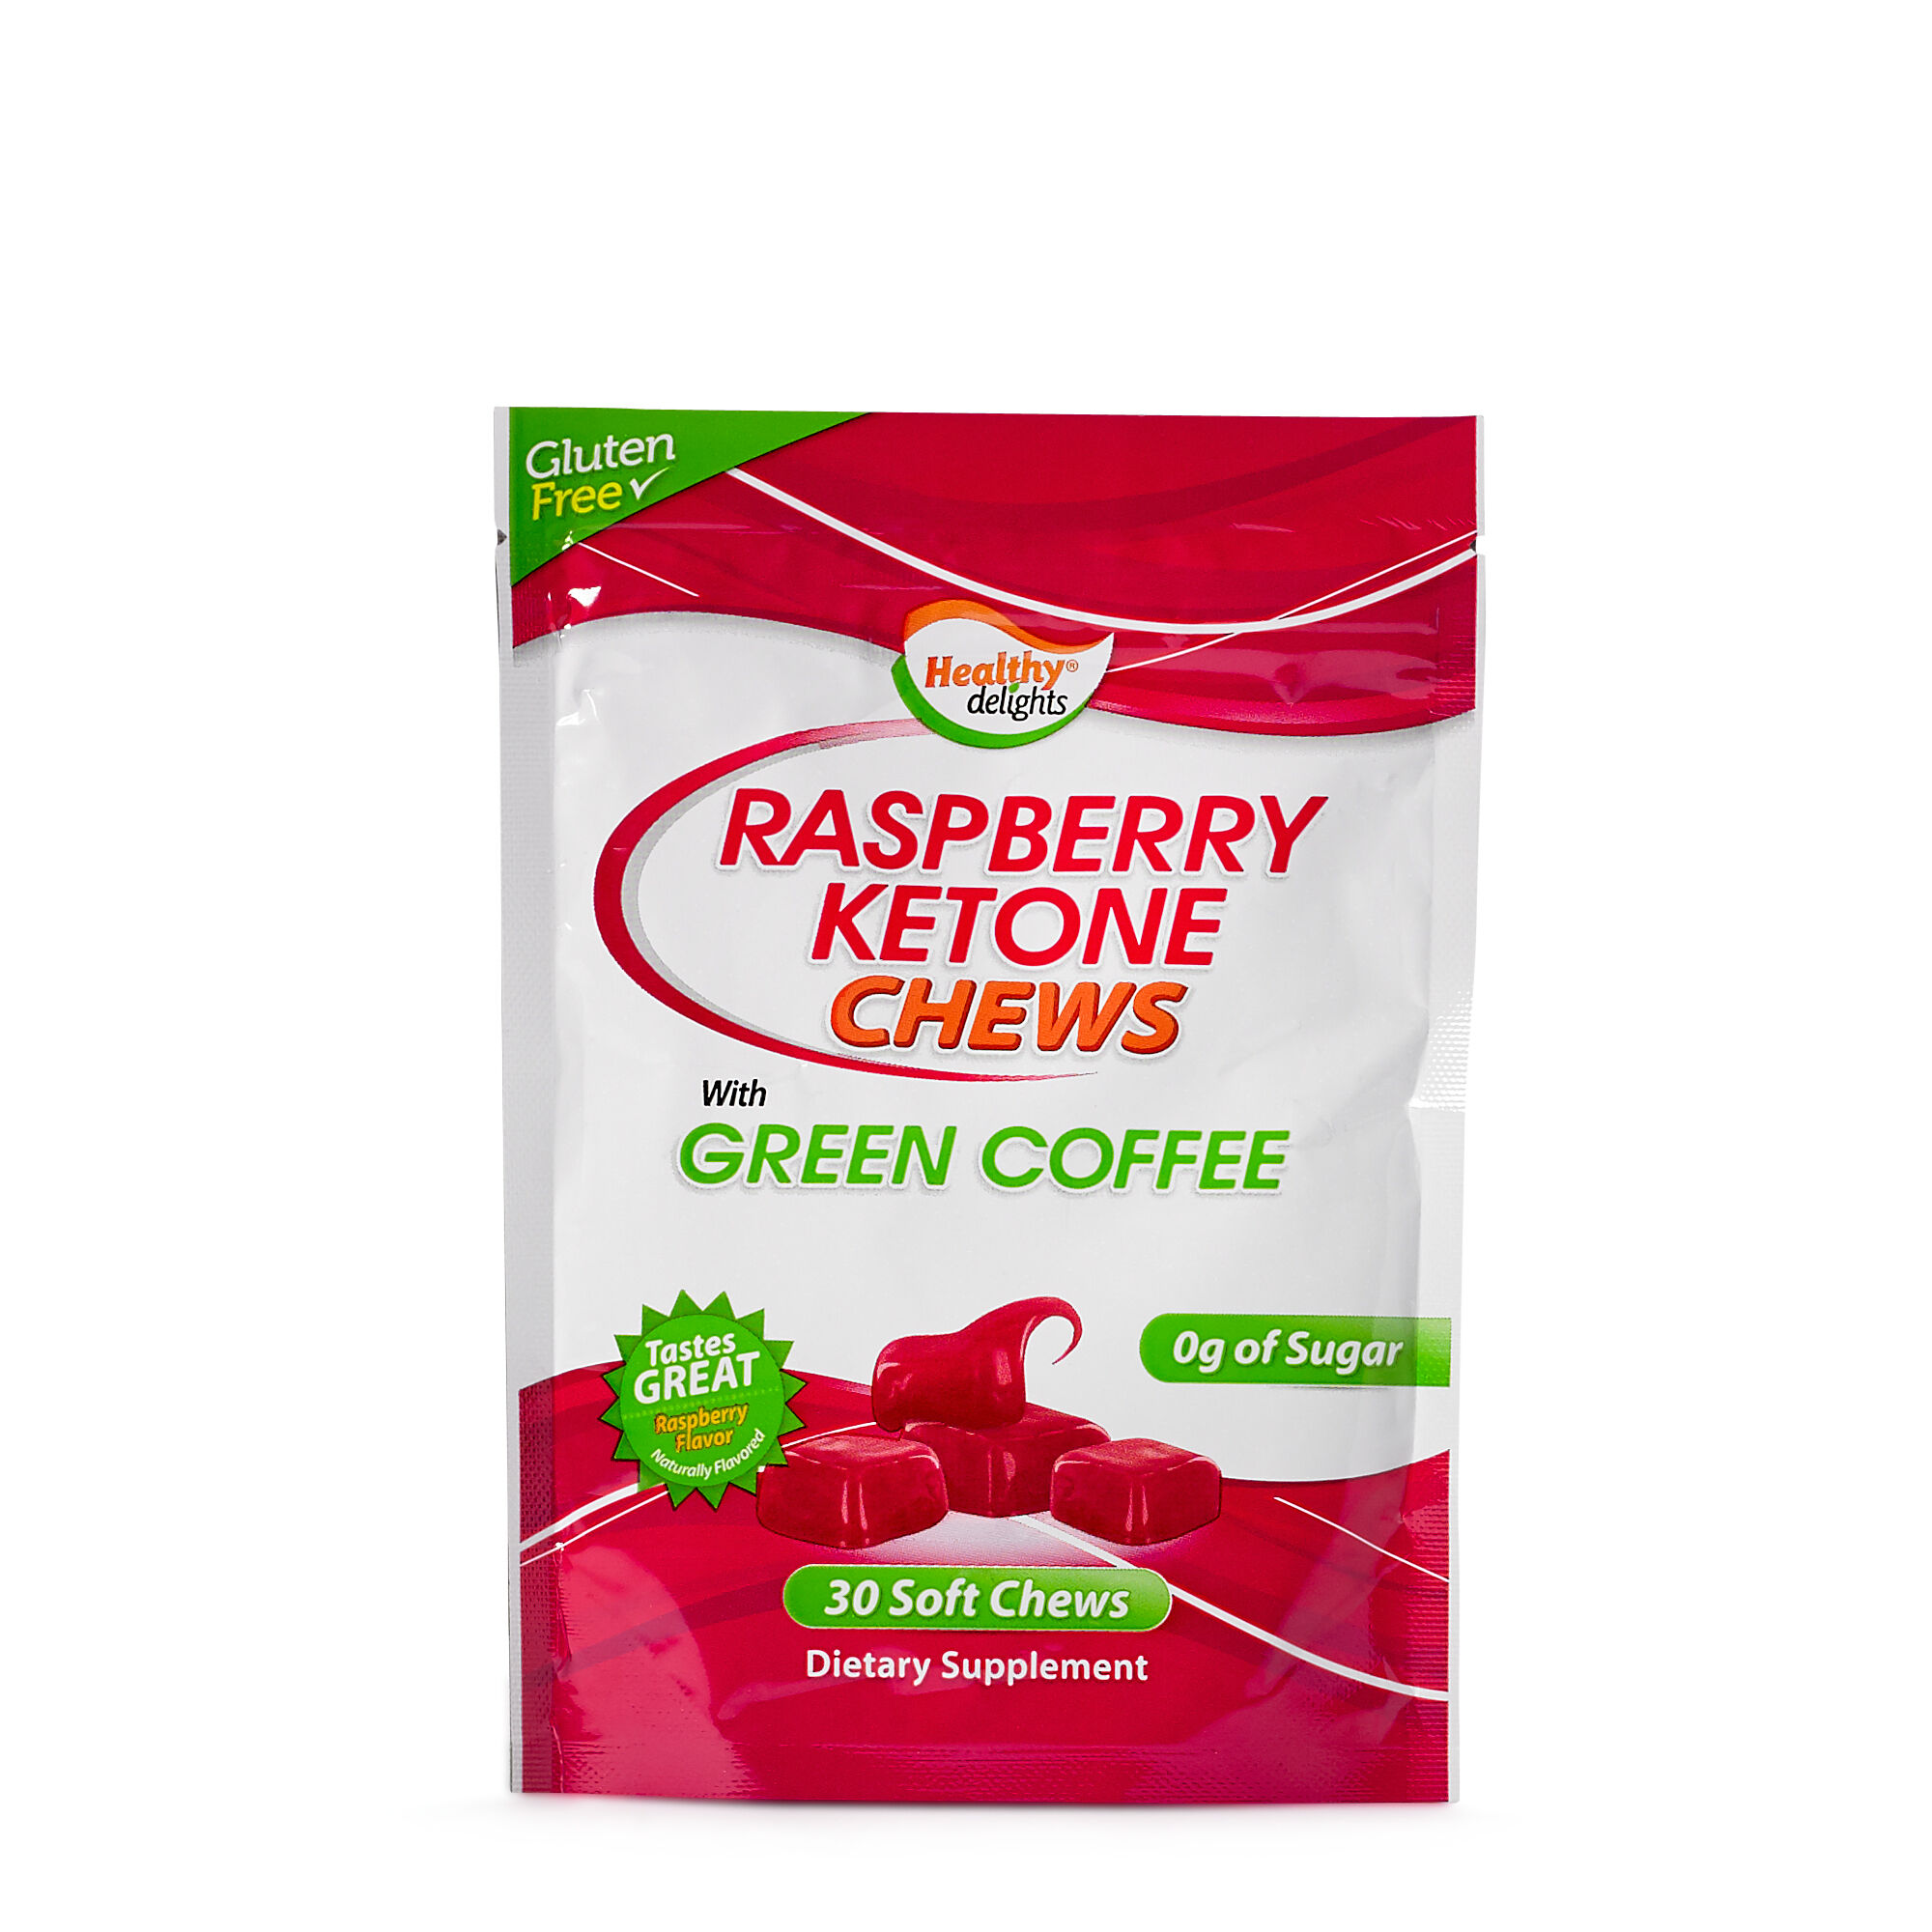 what does raspberry ketone and green coffee do